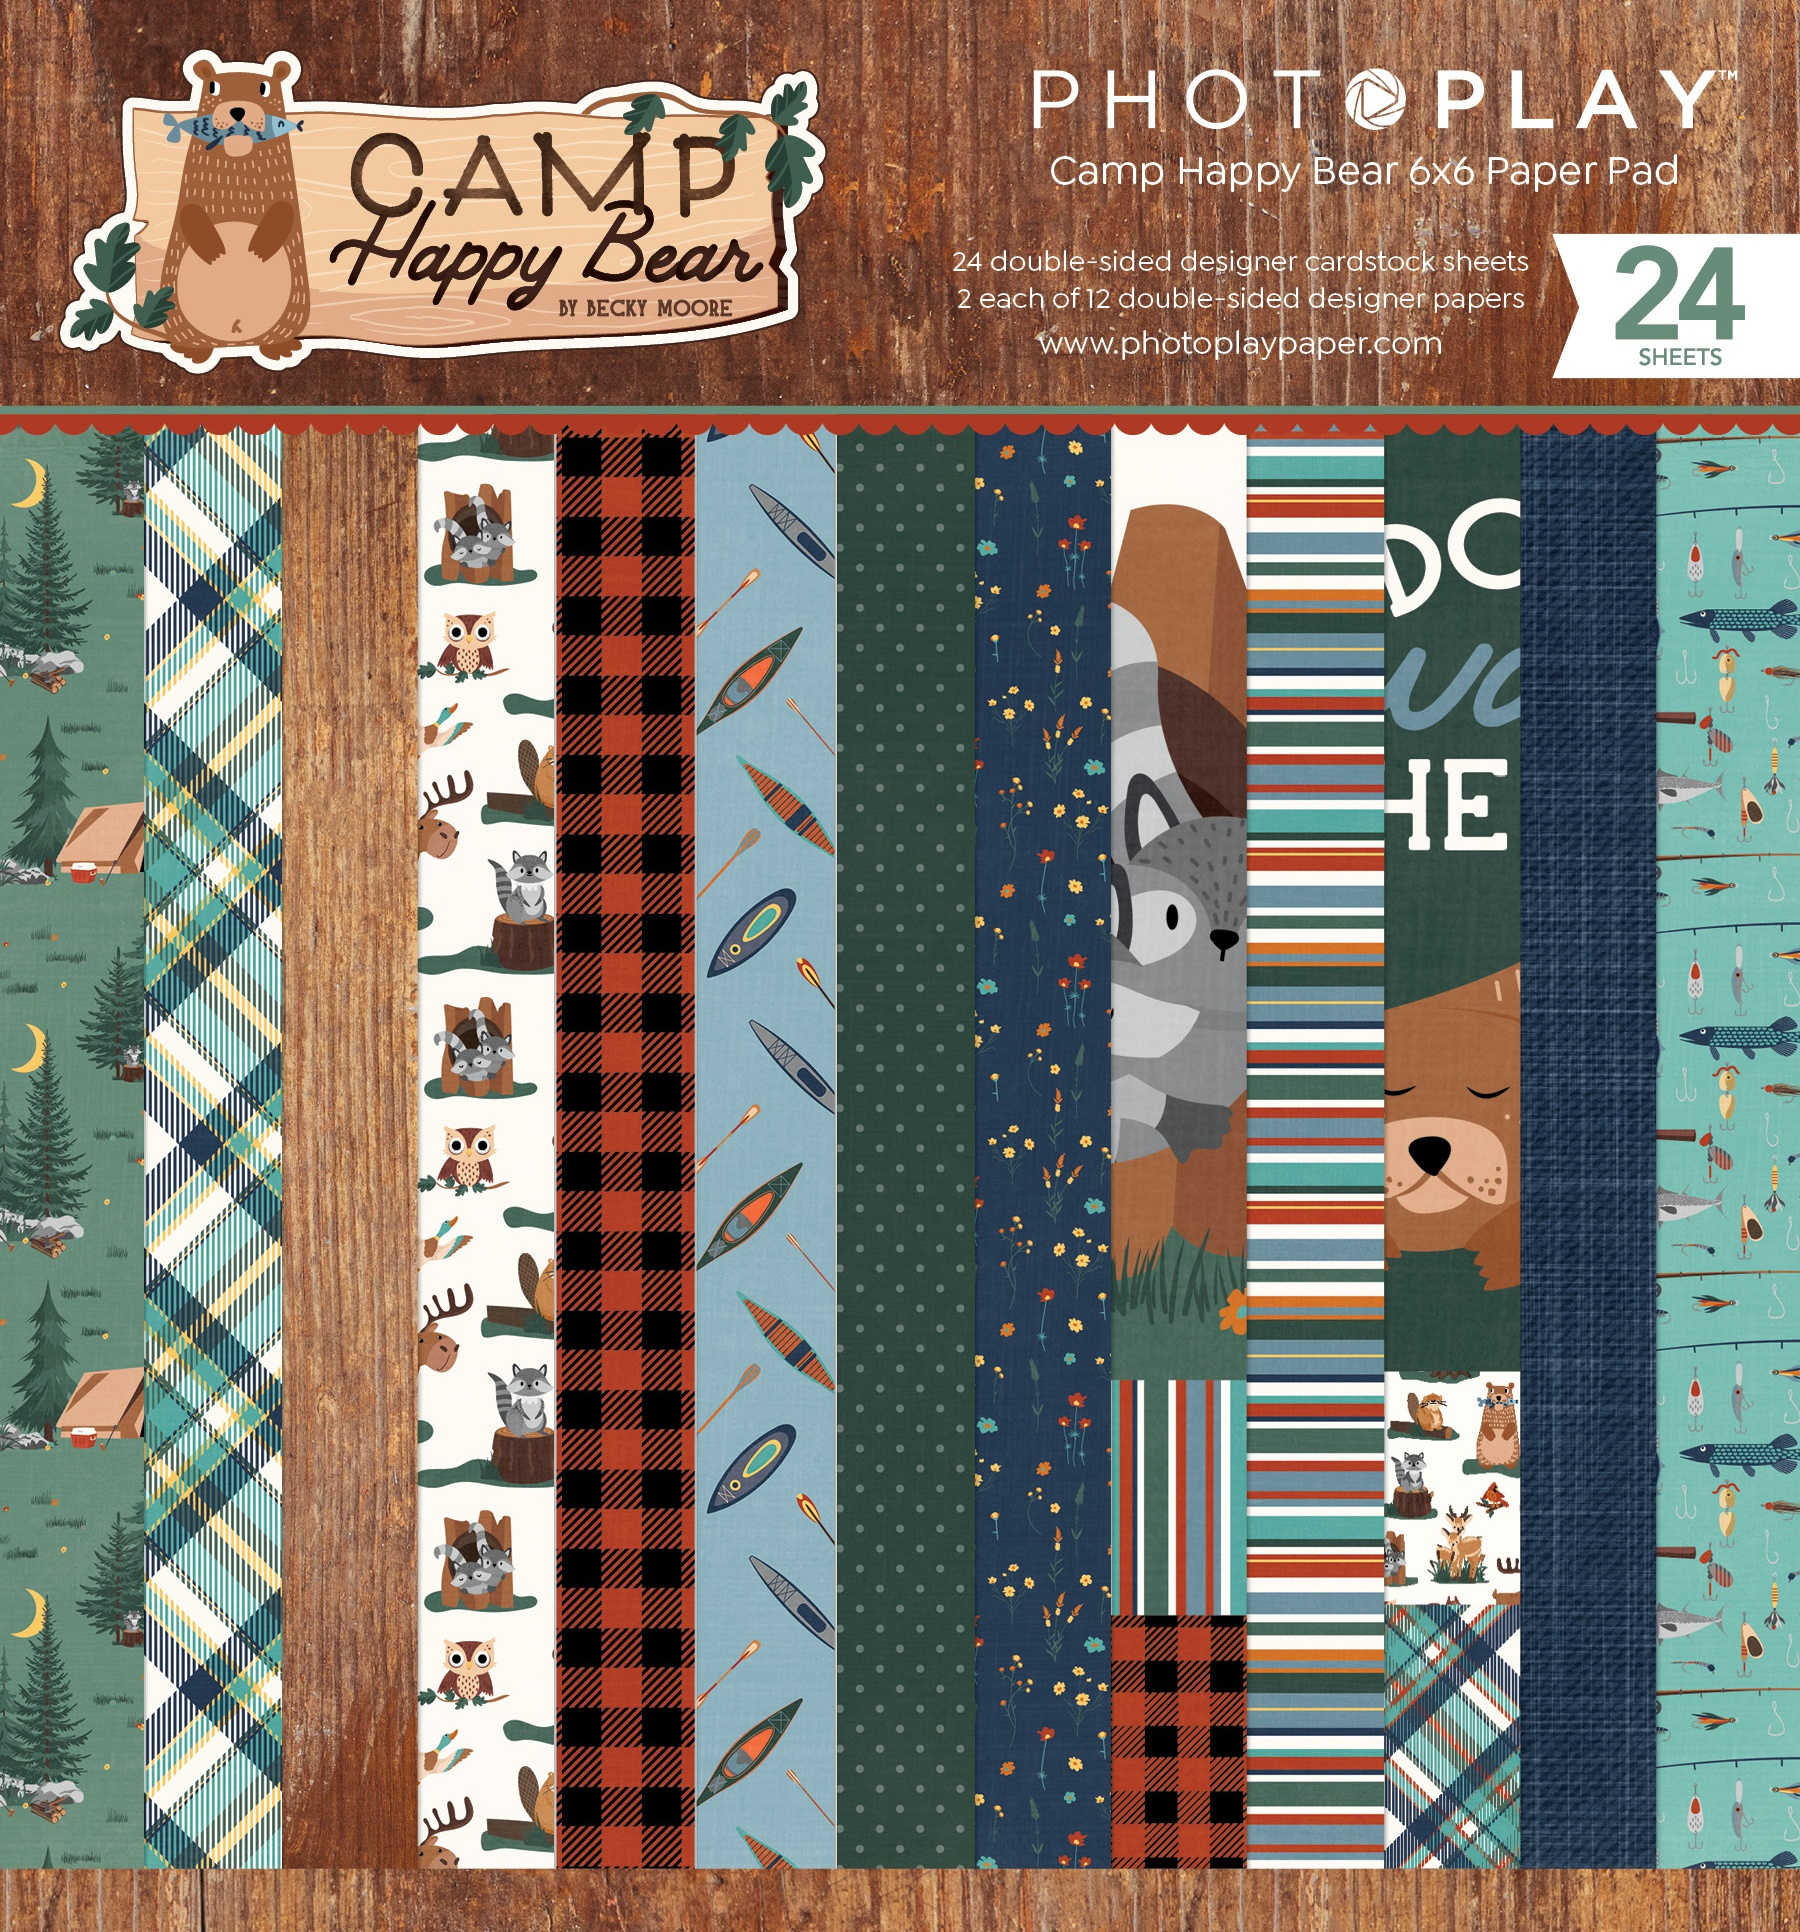 Camp Happy Bear 6x6 Double-Sided Paper Pad 6X6 24/Pkg - Photo Play